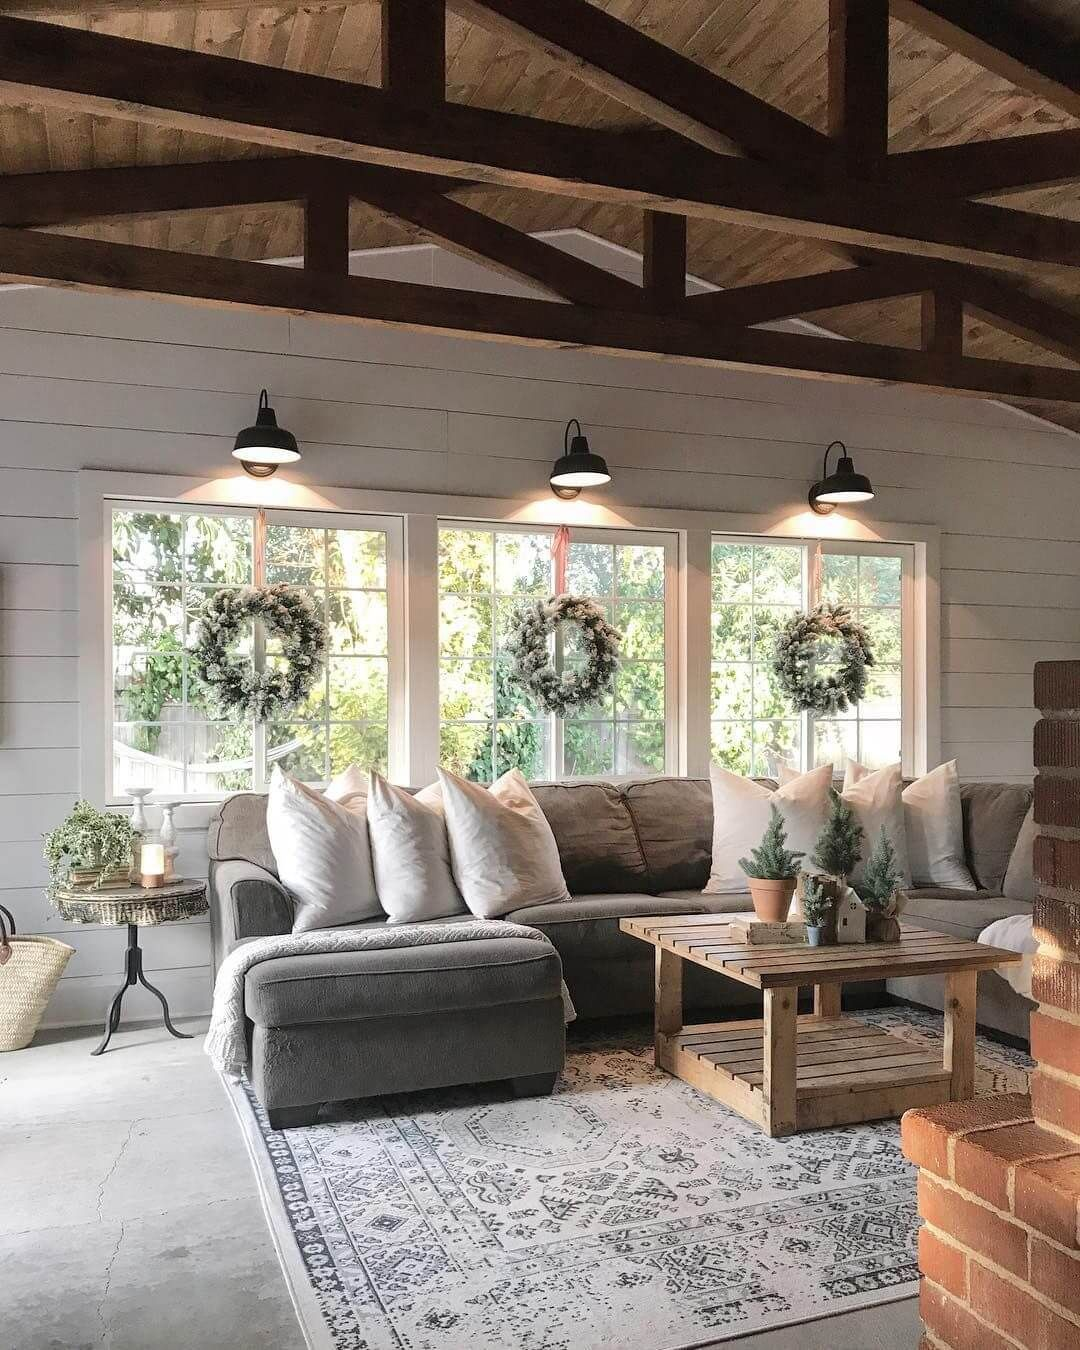 Photo of 38 Rustic Farmhouse Interior Design Ideas That Will Inspire Your 2018 Remodel